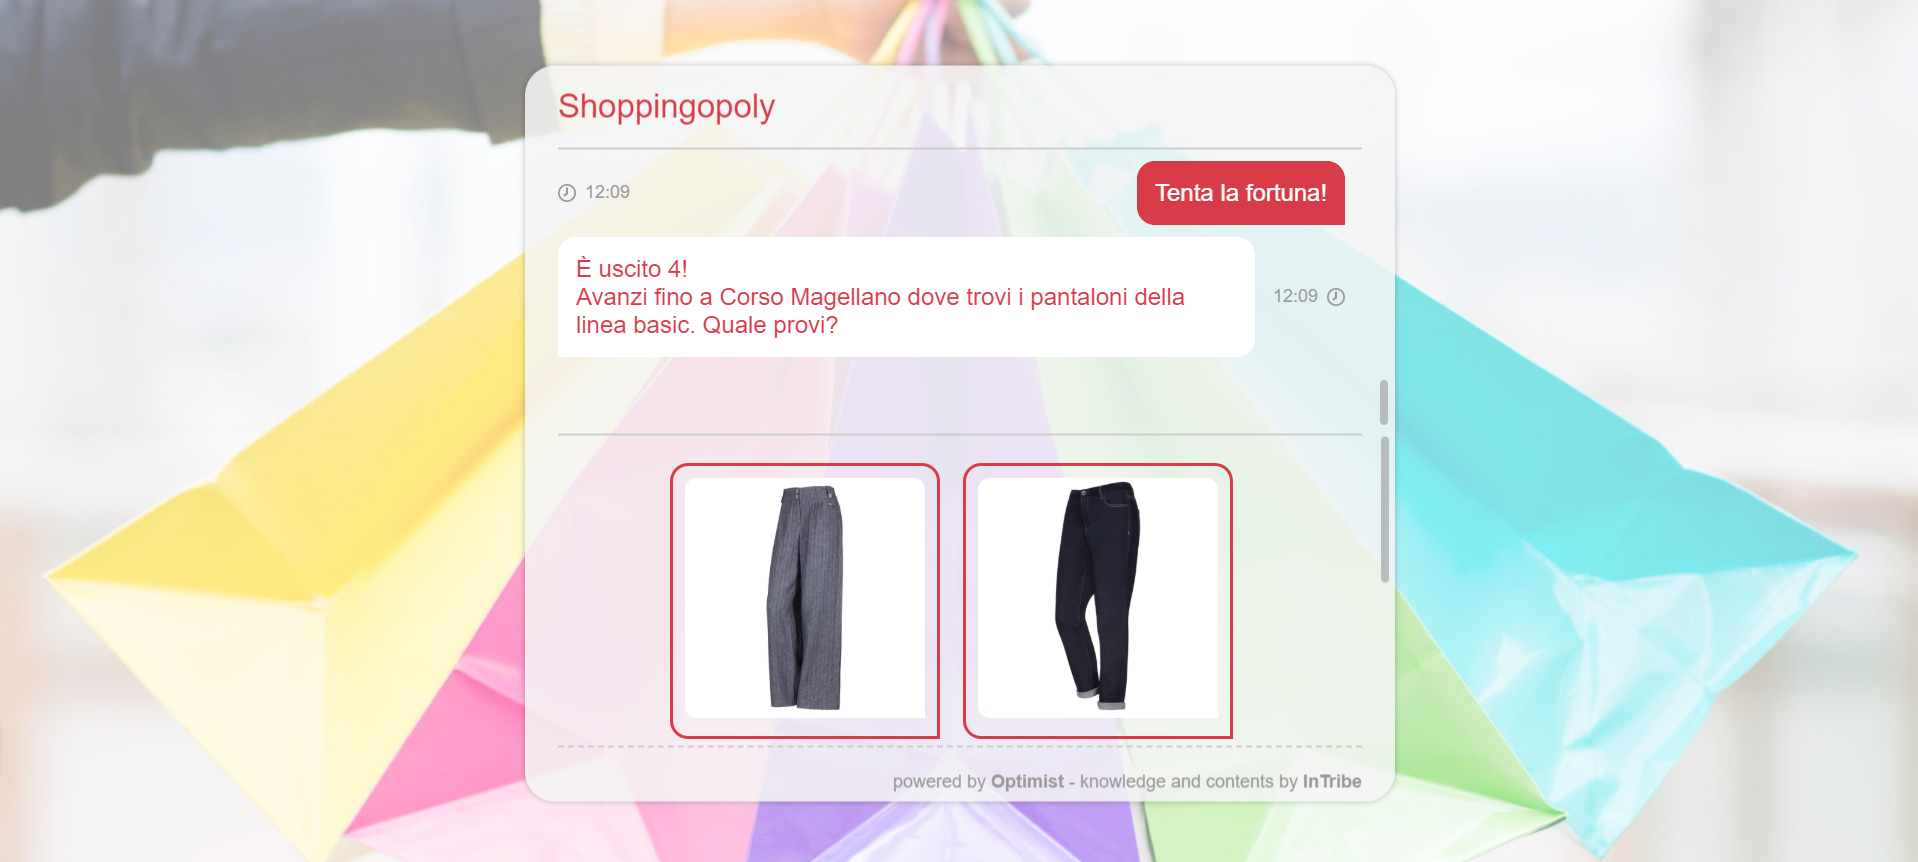 shoppingopoly-shopping-experience-intribe-trend-consumatori-sondaggio